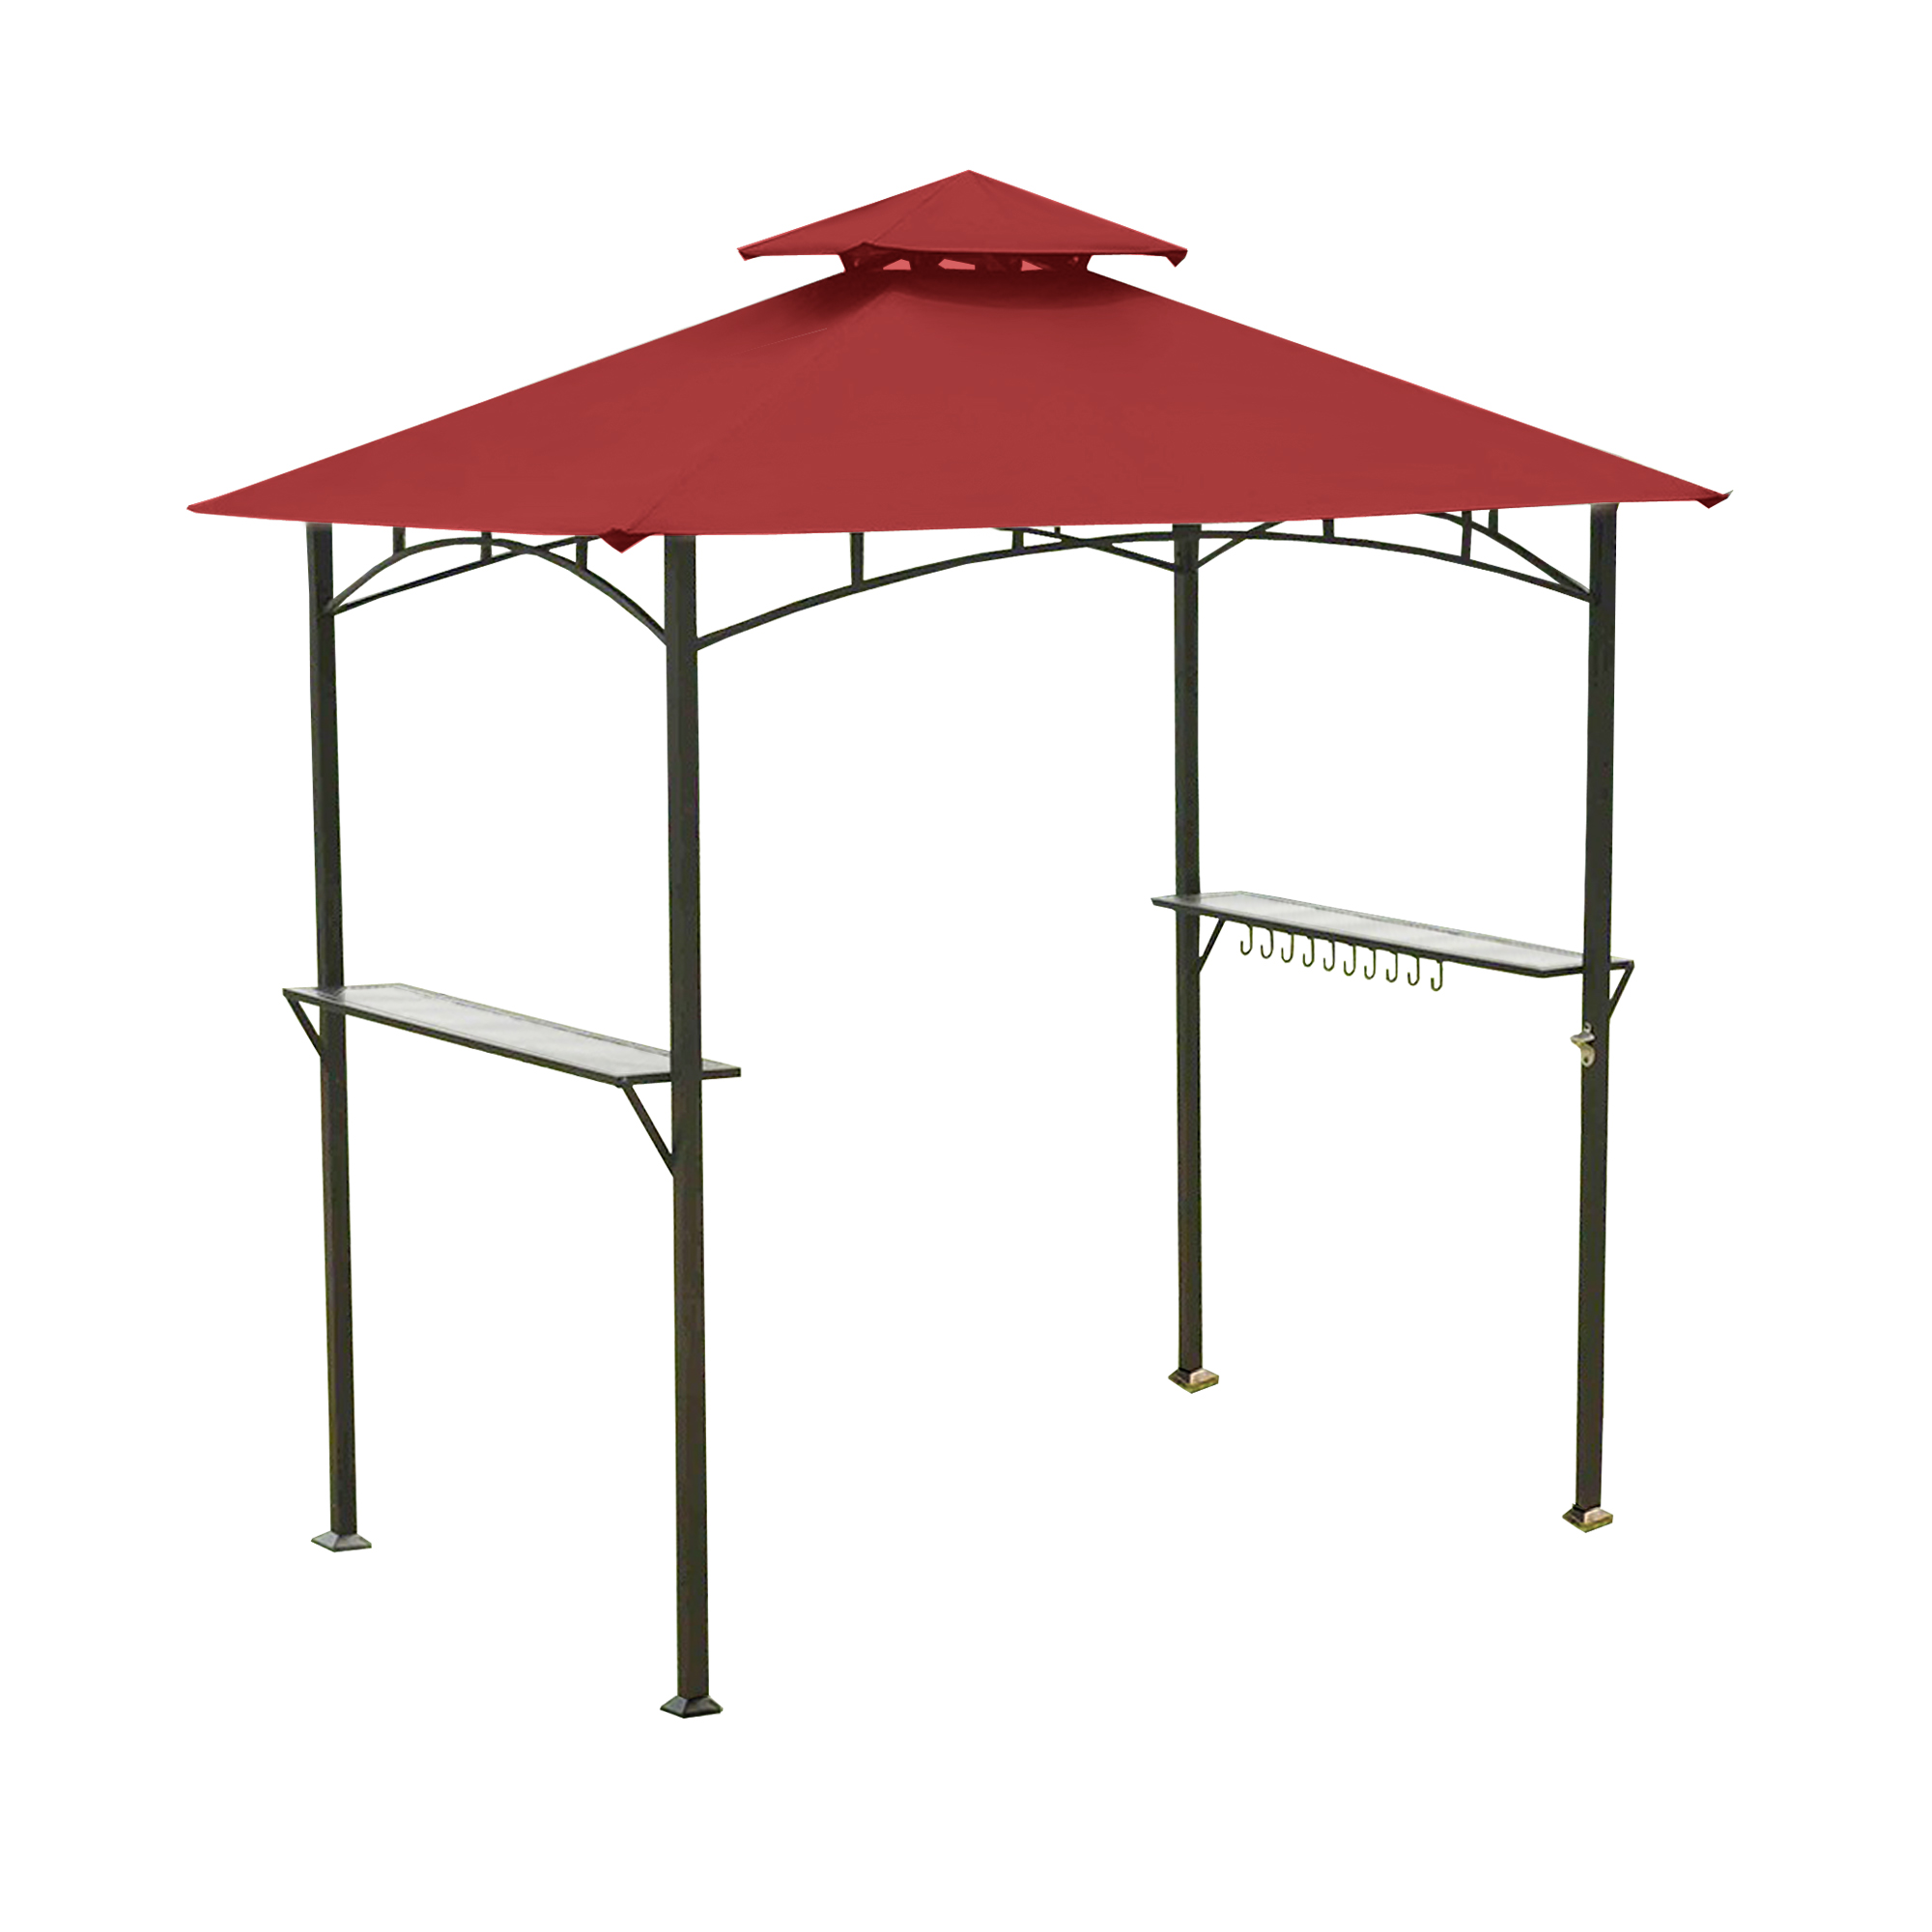 Garden Winds Replacement Canopy Top Cover for the Mainstays Grill Shelter Gazebo - Cinnabar